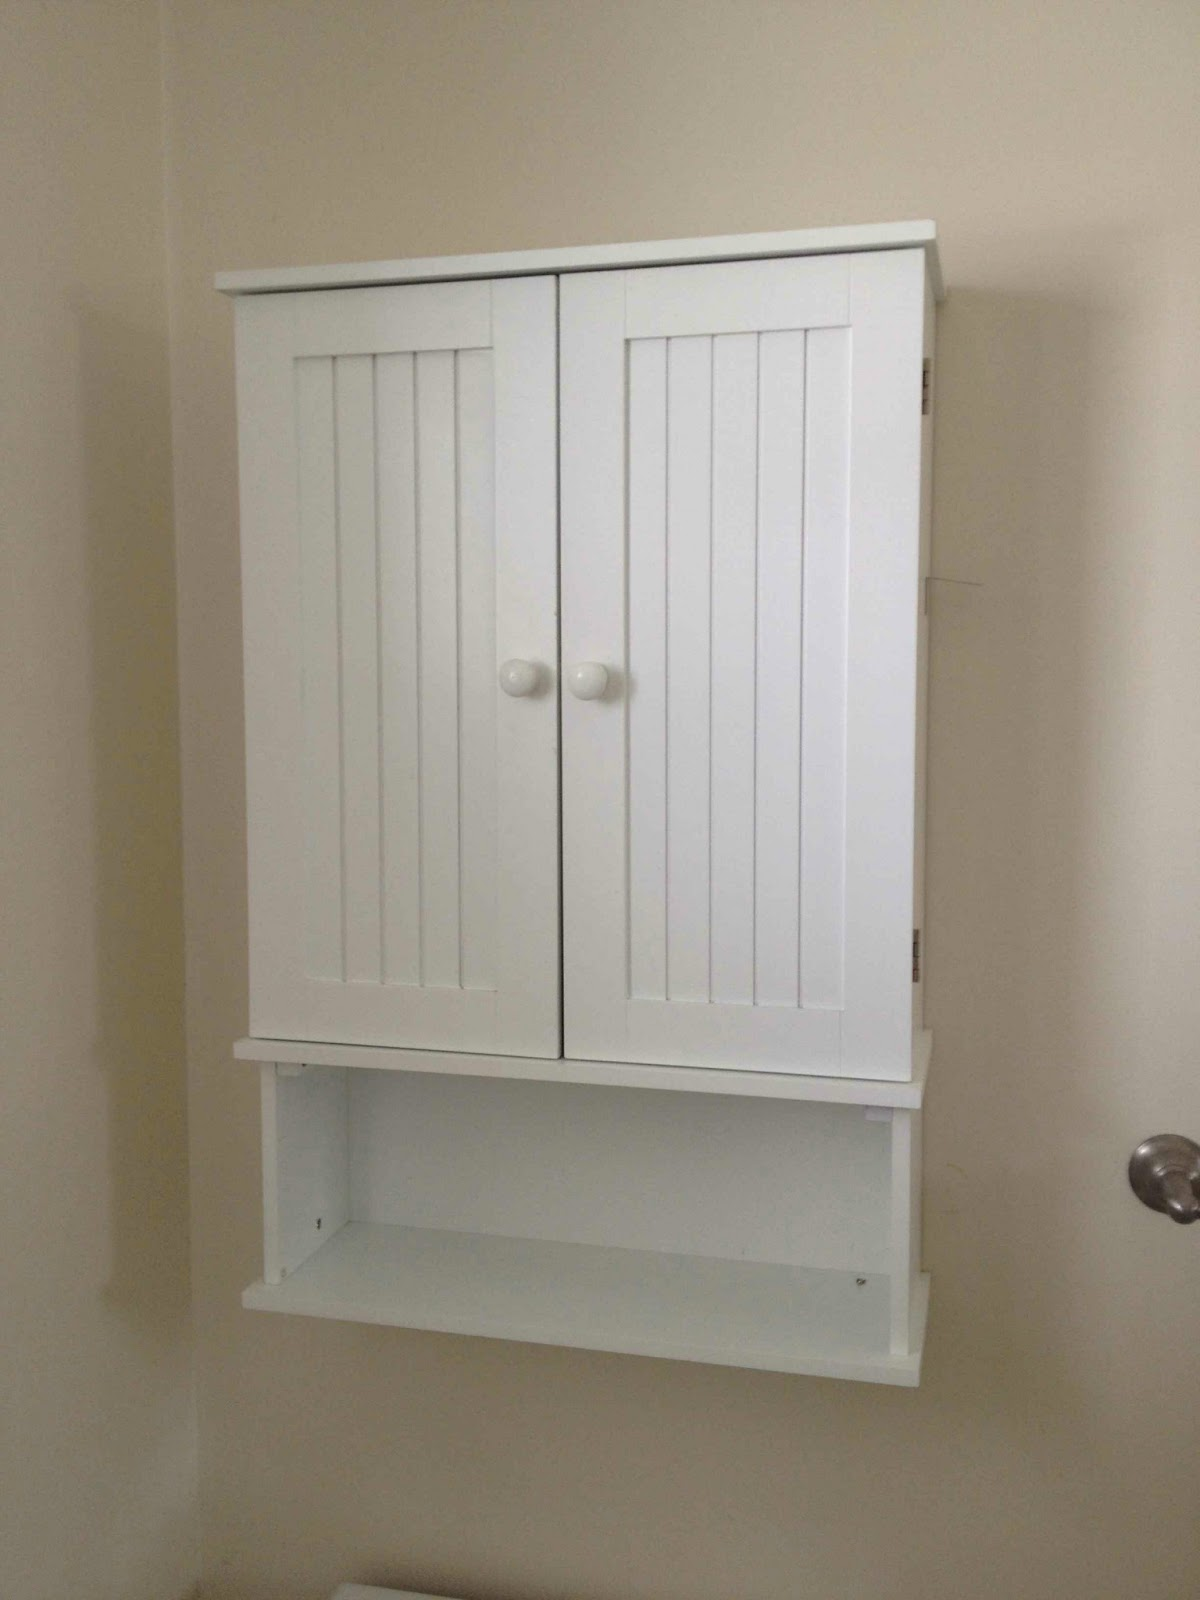 Annie sloan chalk paint bathroom cabinet makeover driven for Bathroom storage cabinet